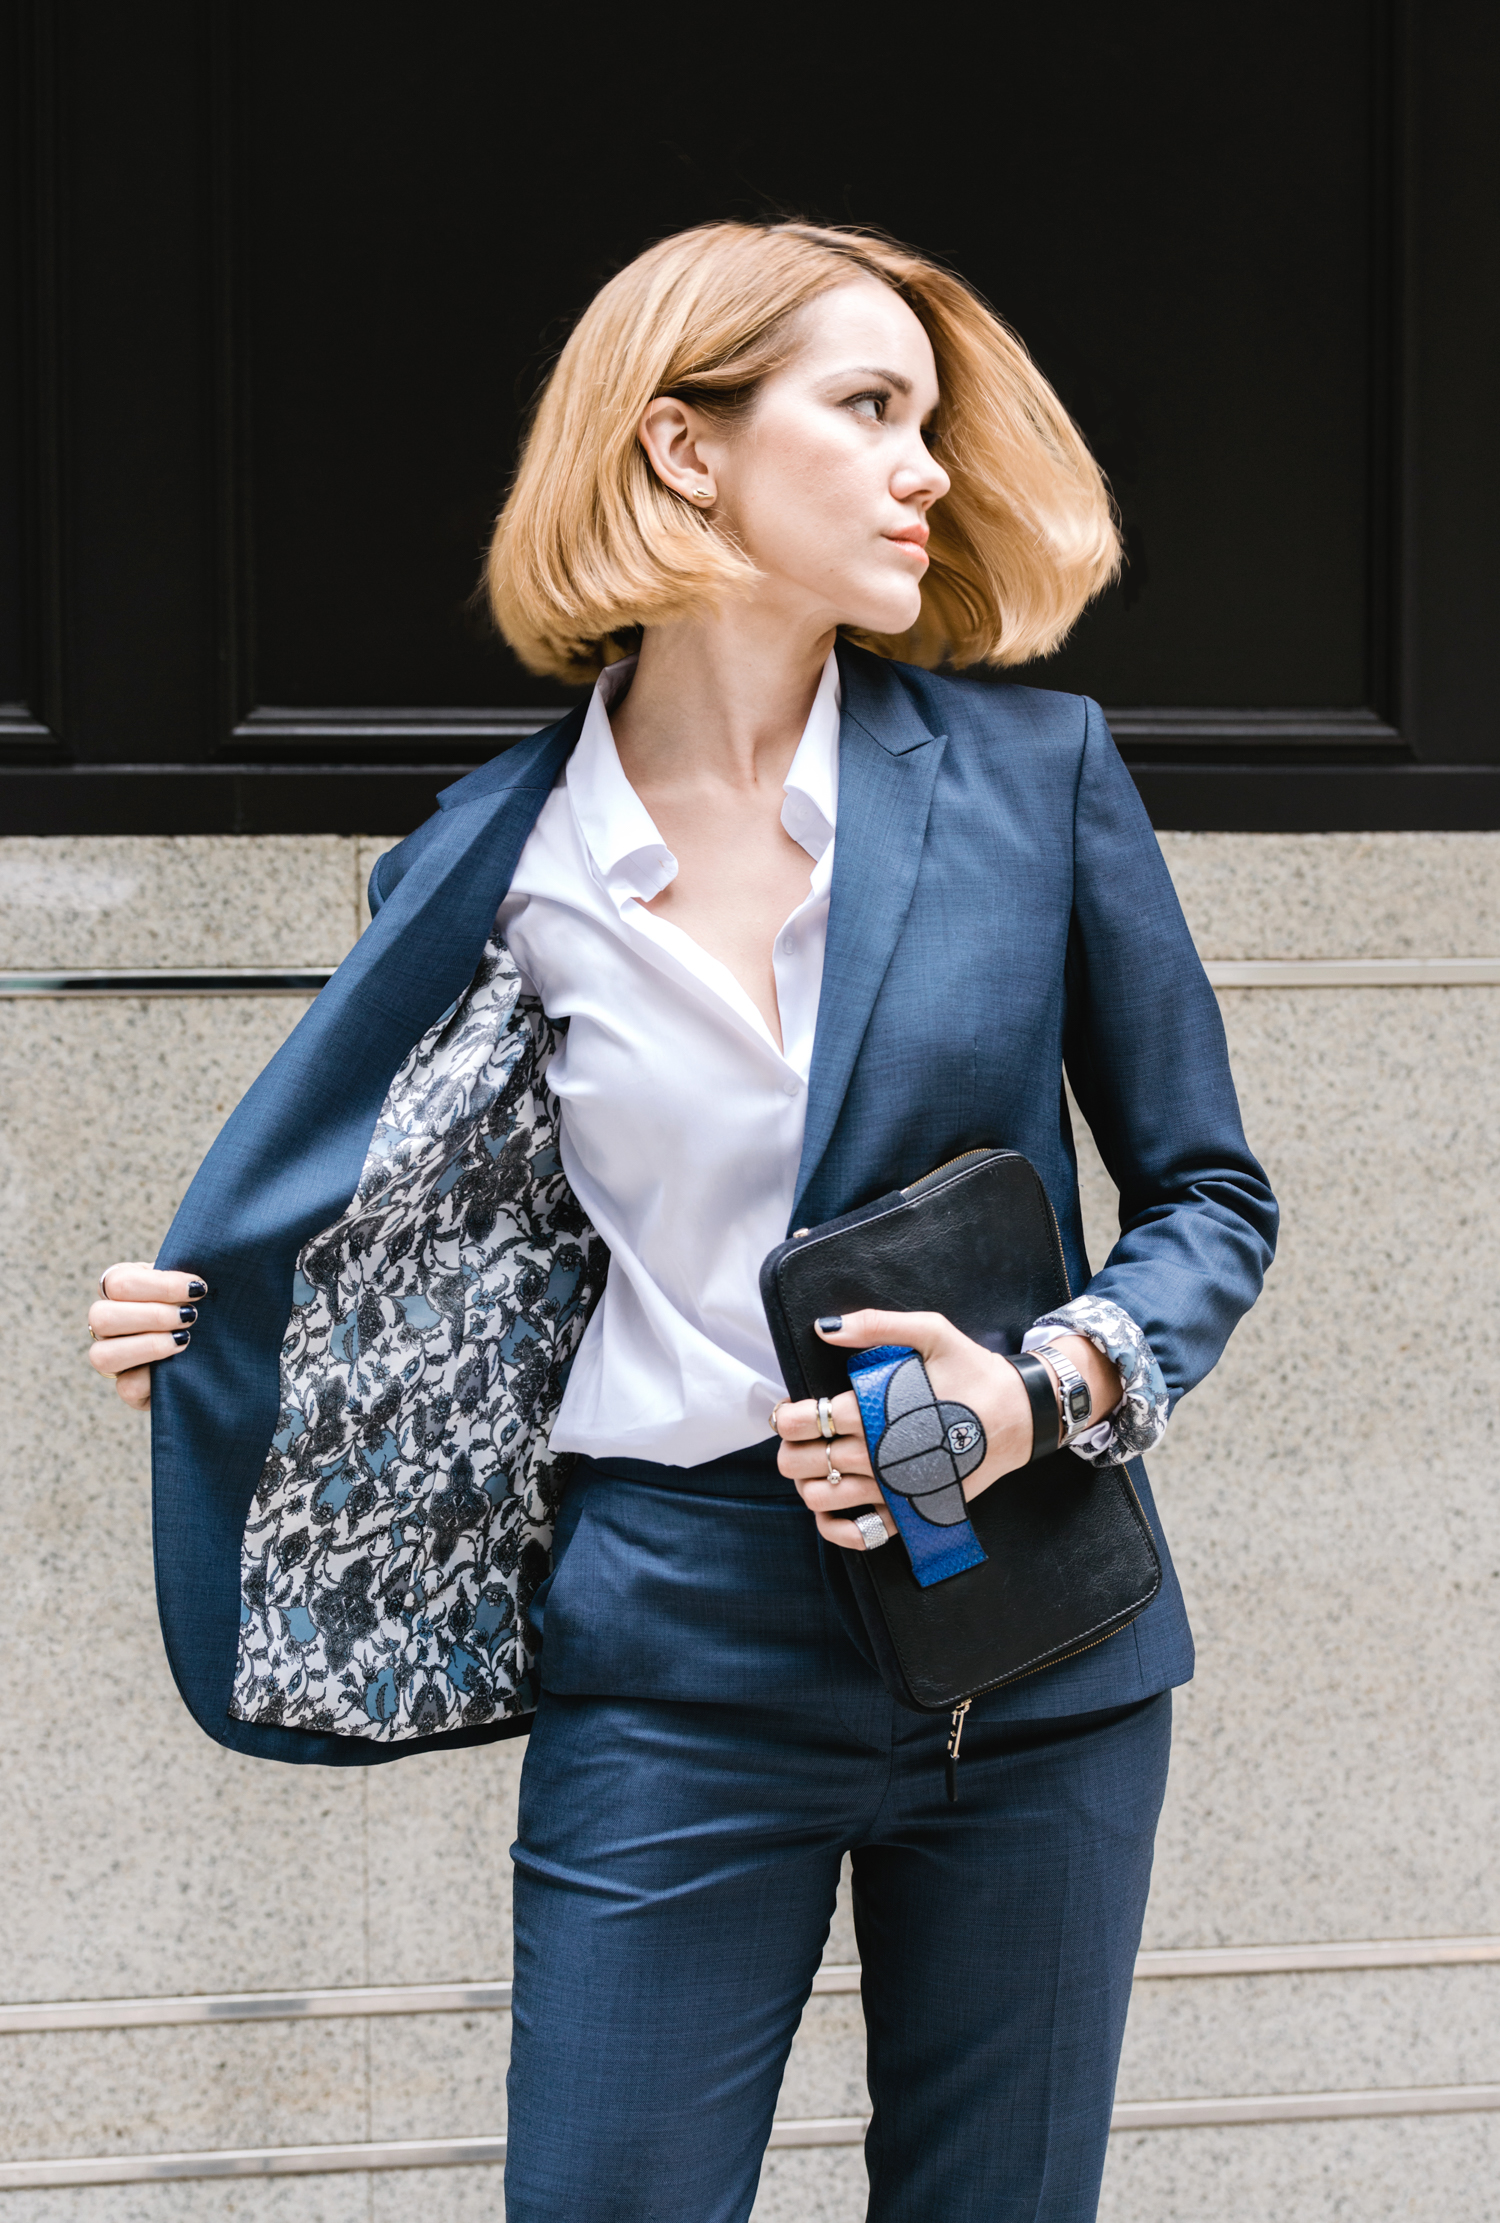 Finally. - A stylish tailor for women.